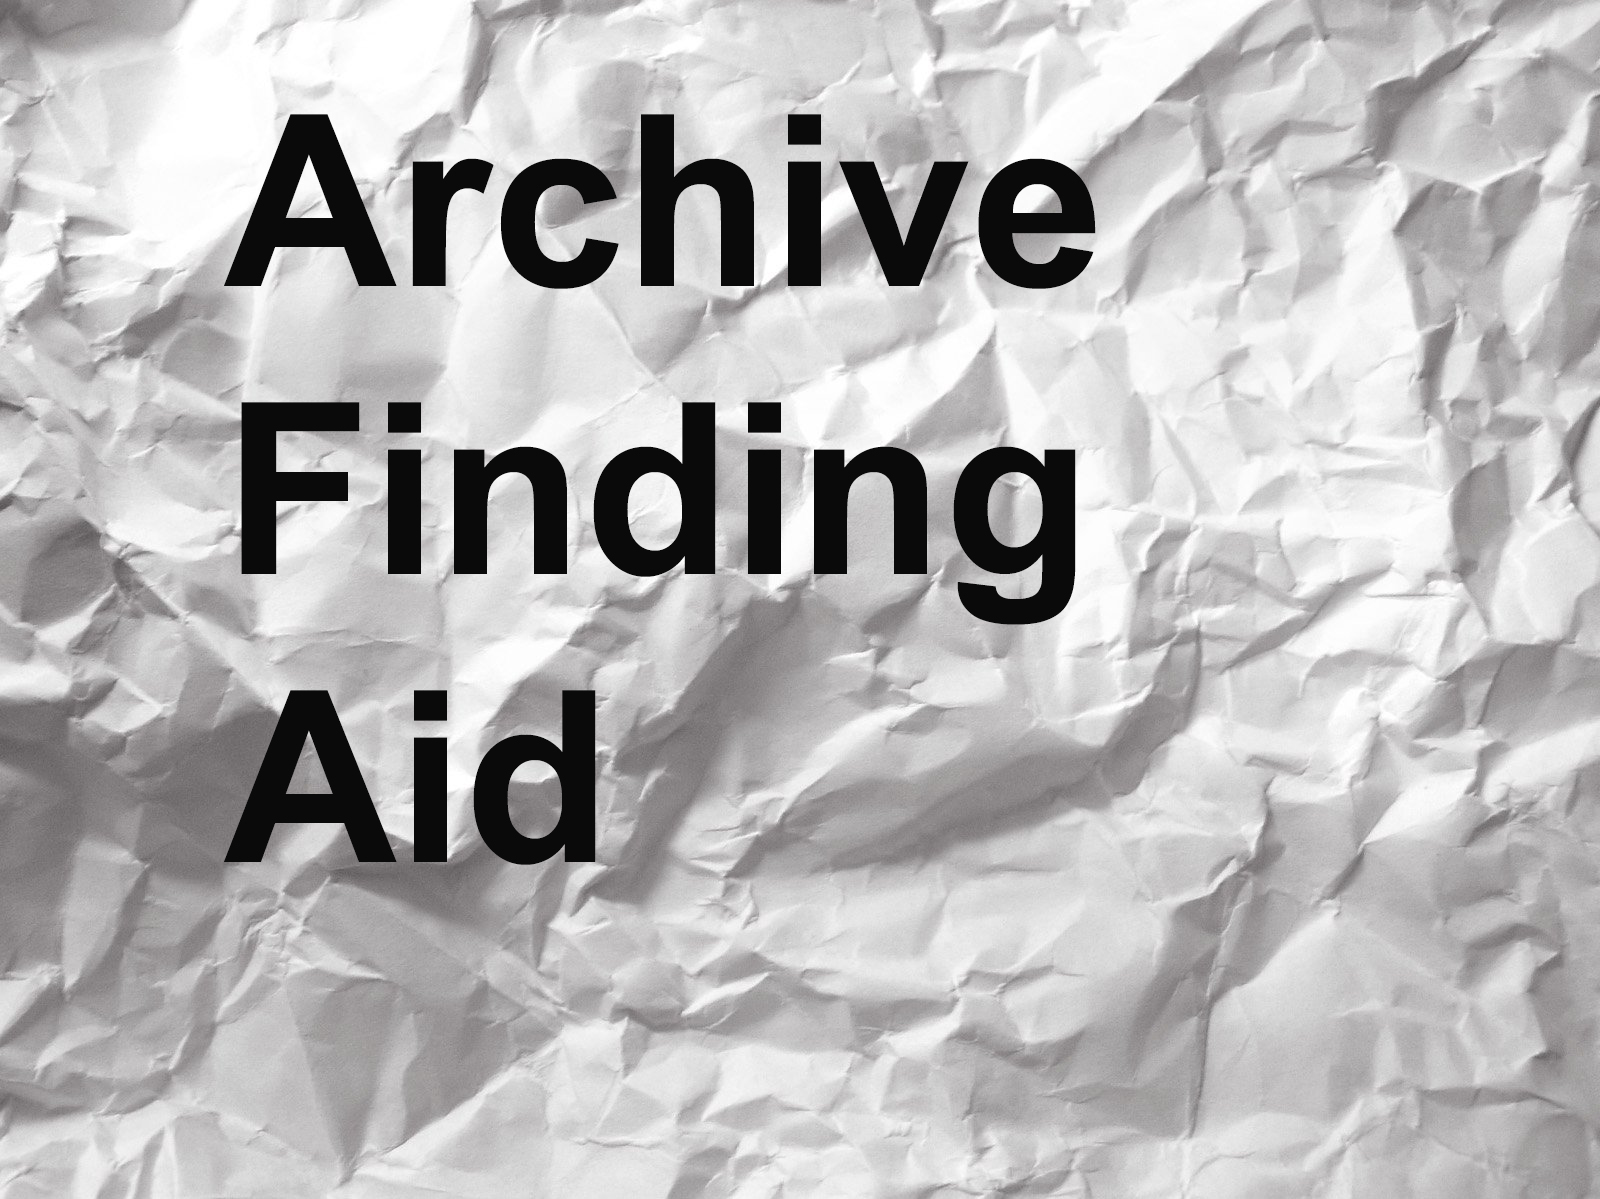 Archives Finding Aids